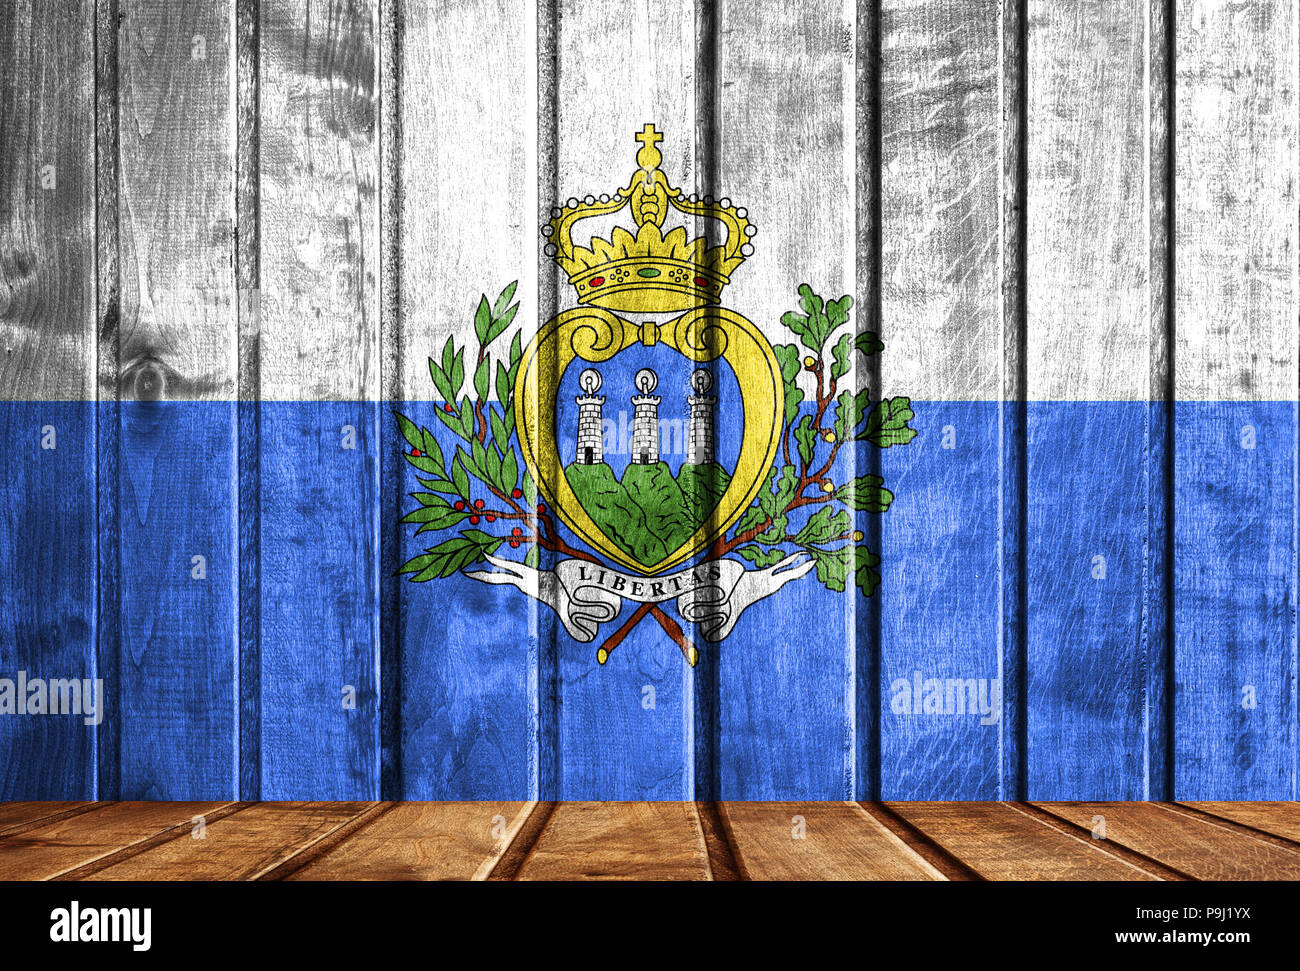 Wooden background with a flag of San marino. - Stock Image